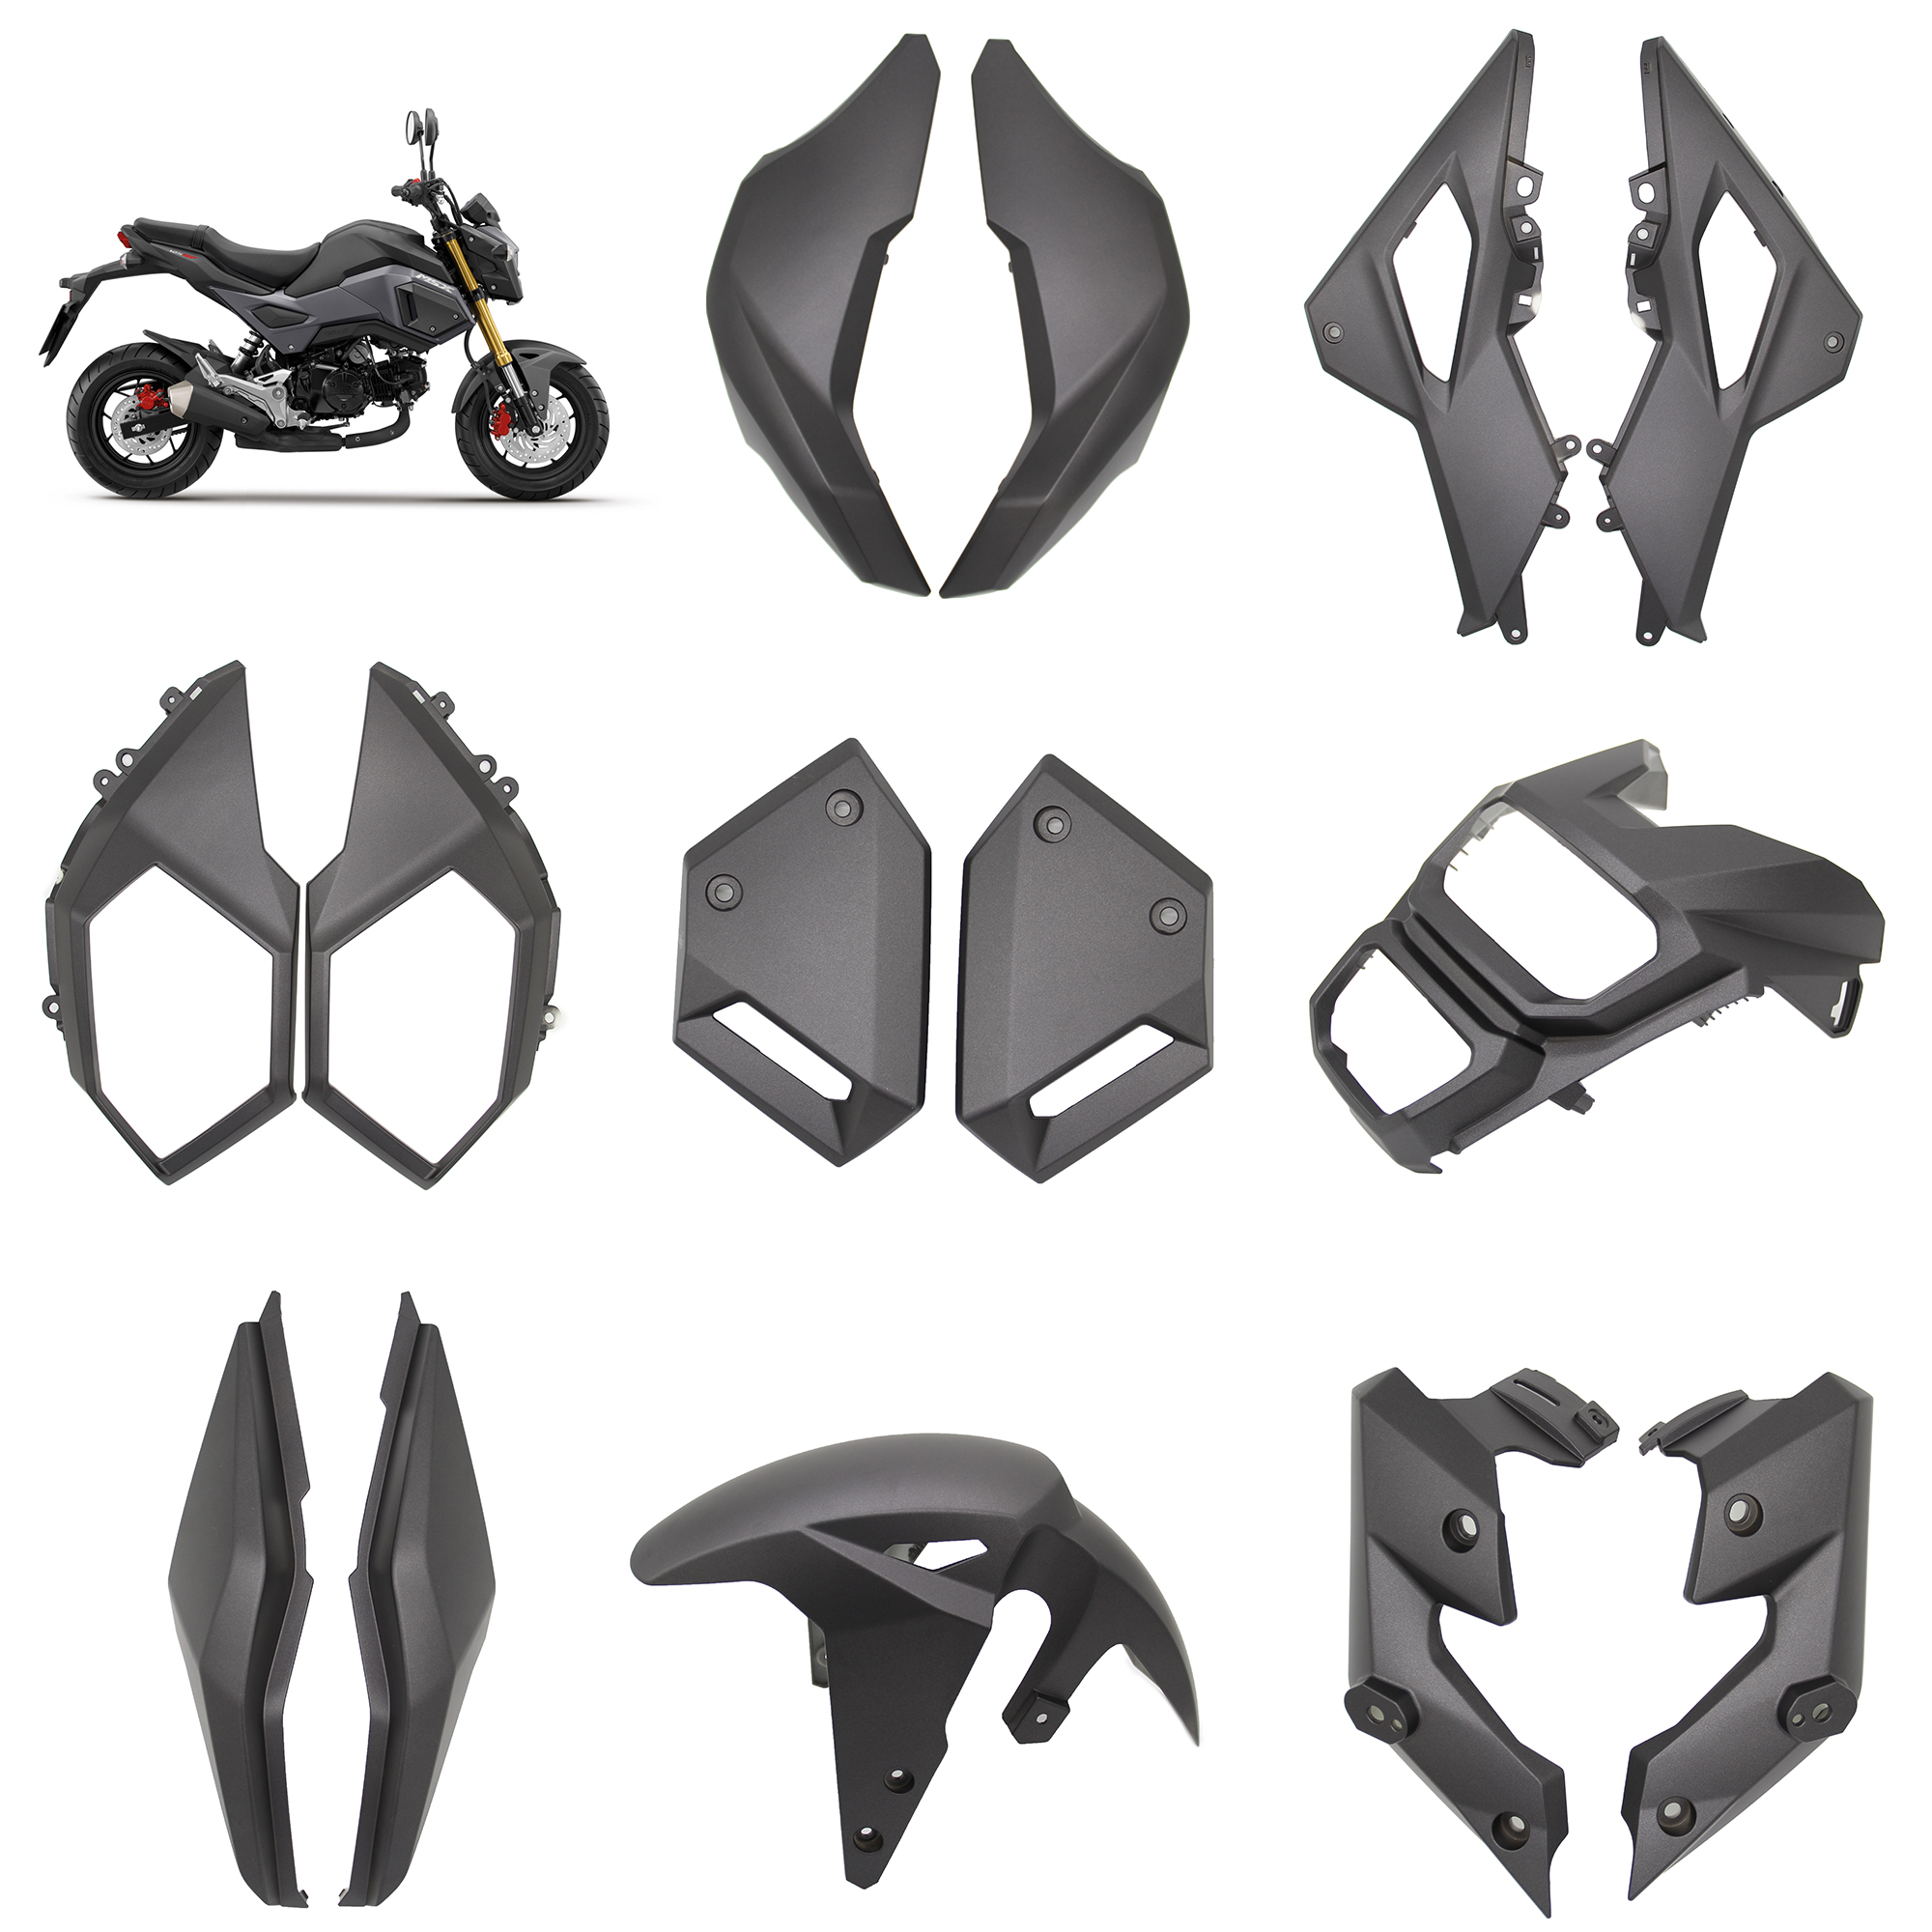 For Honda Msx125 Msx125SF Grom 2016 - 2020 Fairing Kits Front Fender Mudguard Side Panel Cover Cowl Protective Guard